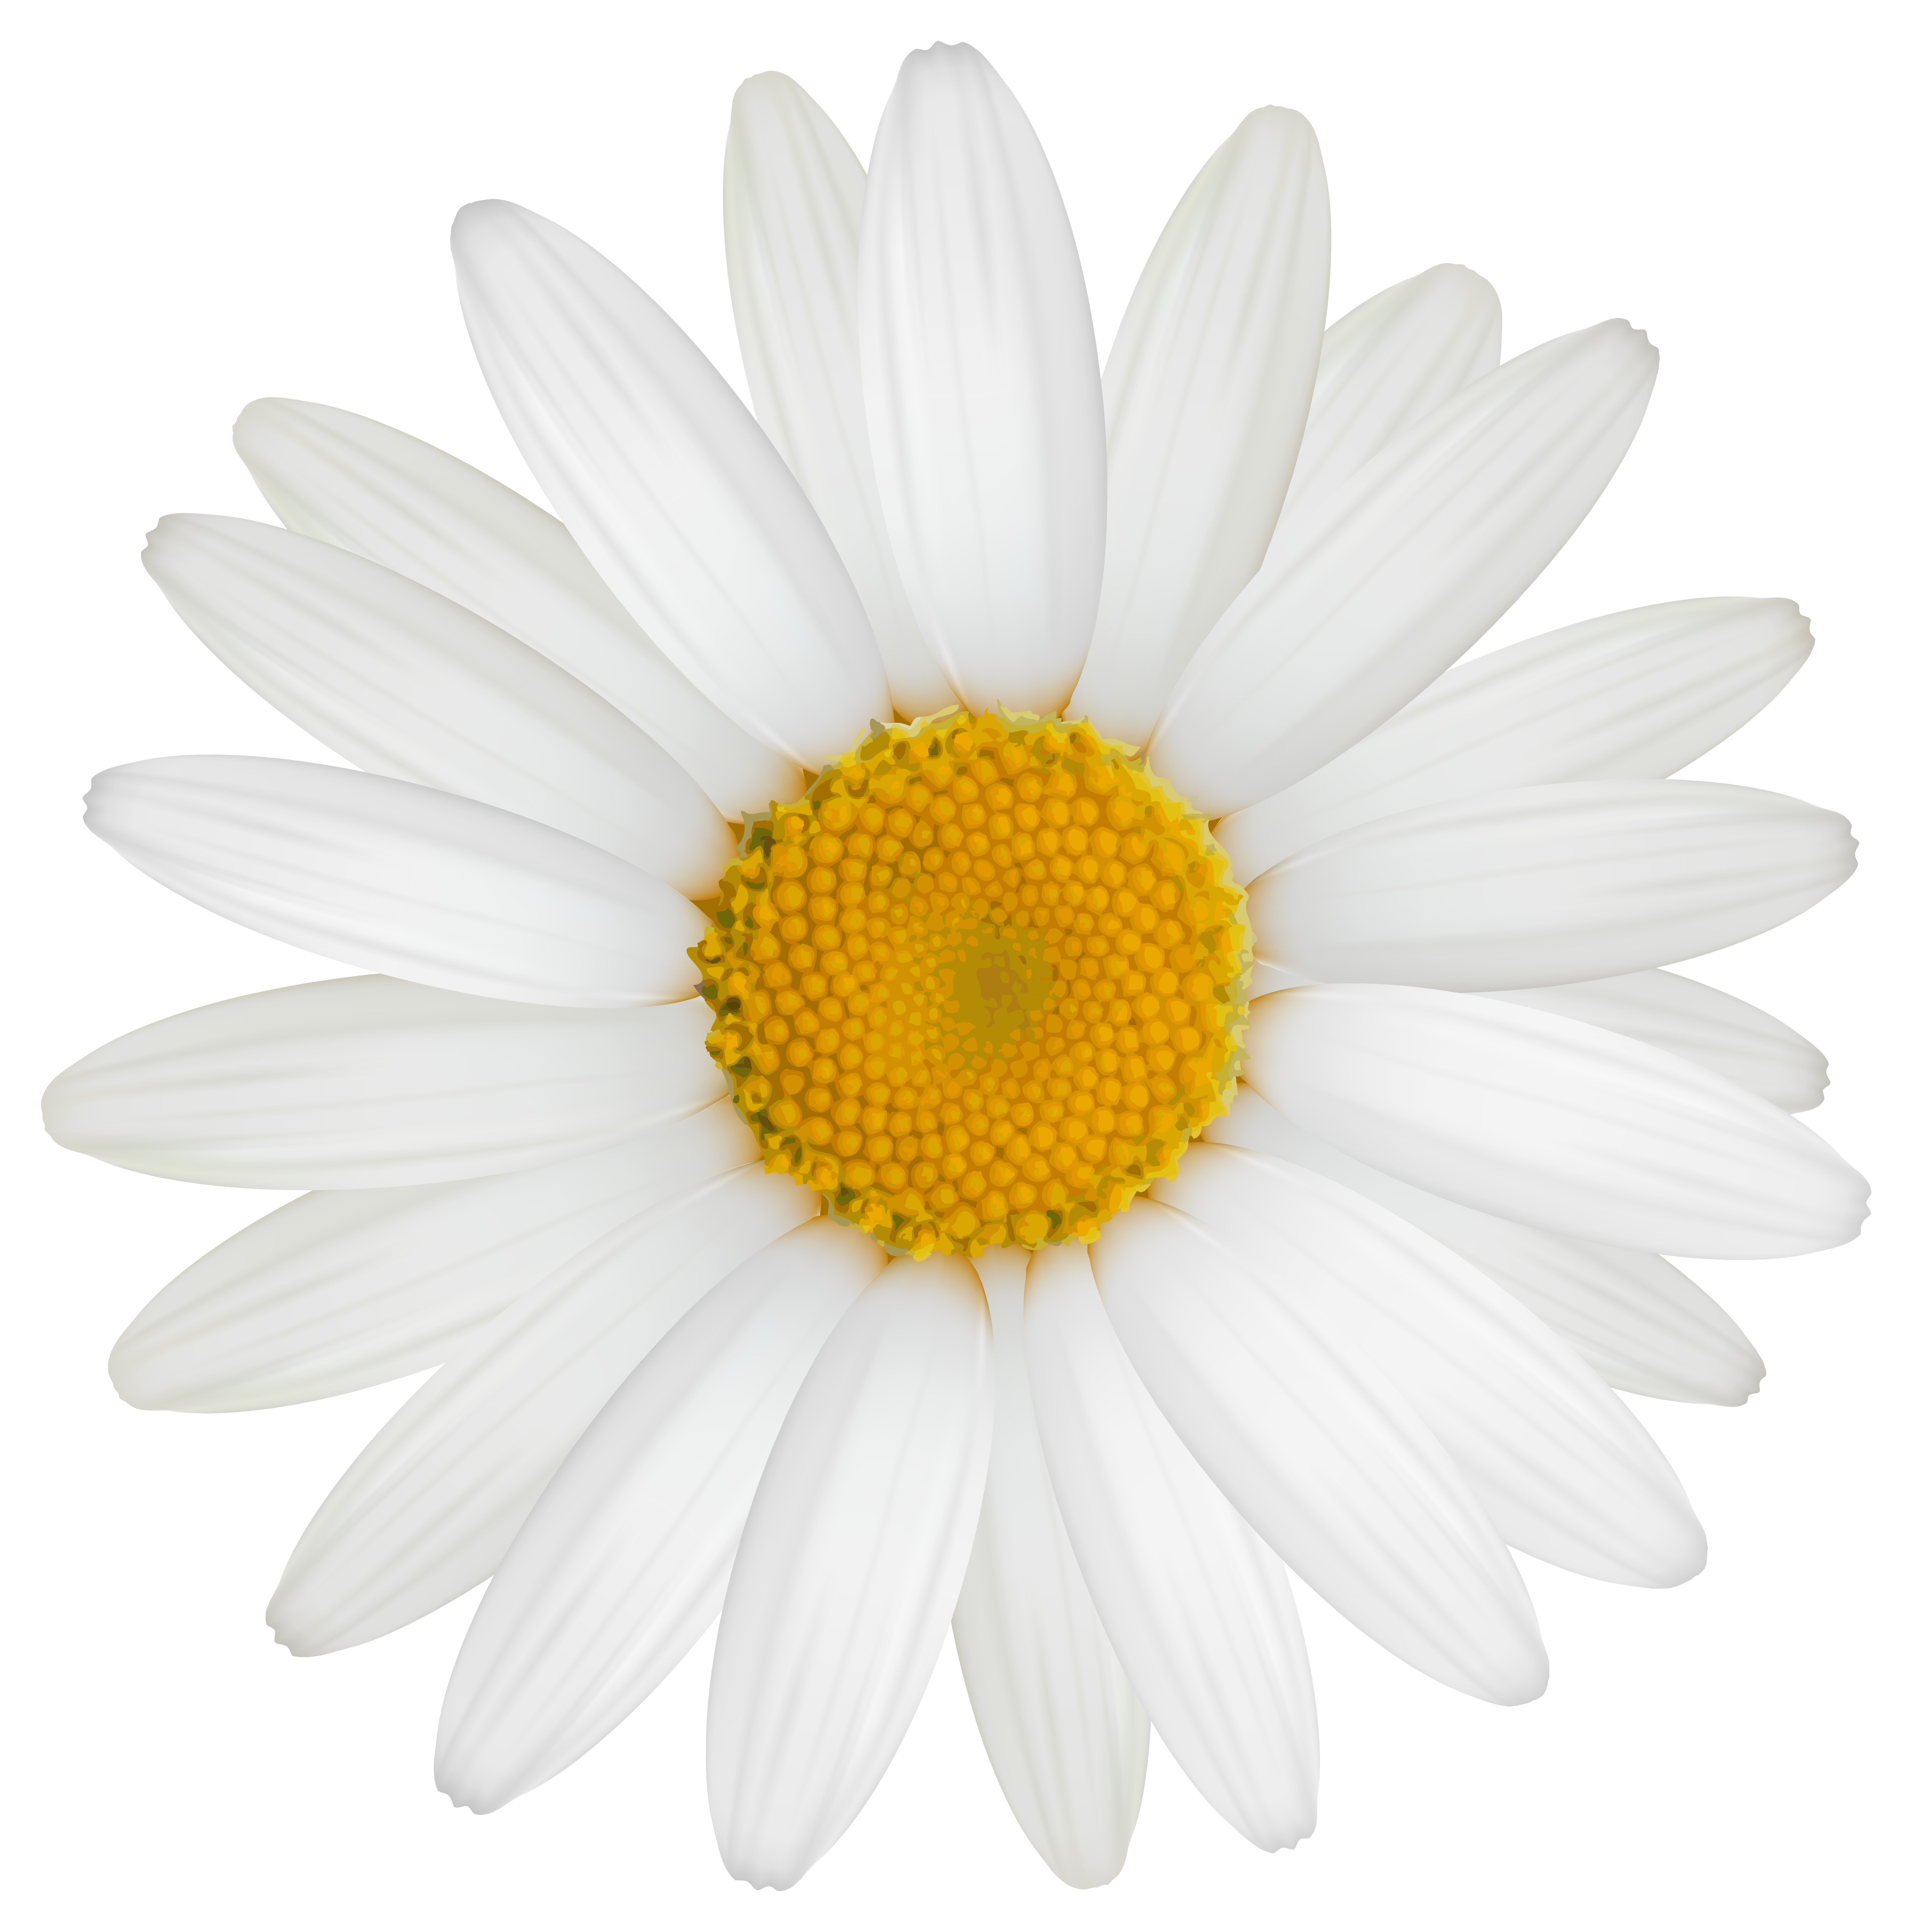 Daisy flower black and white clipart banner library download Daisy PNG Clipart Image | Gallery Yopriceville - High-Quality ... banner library download